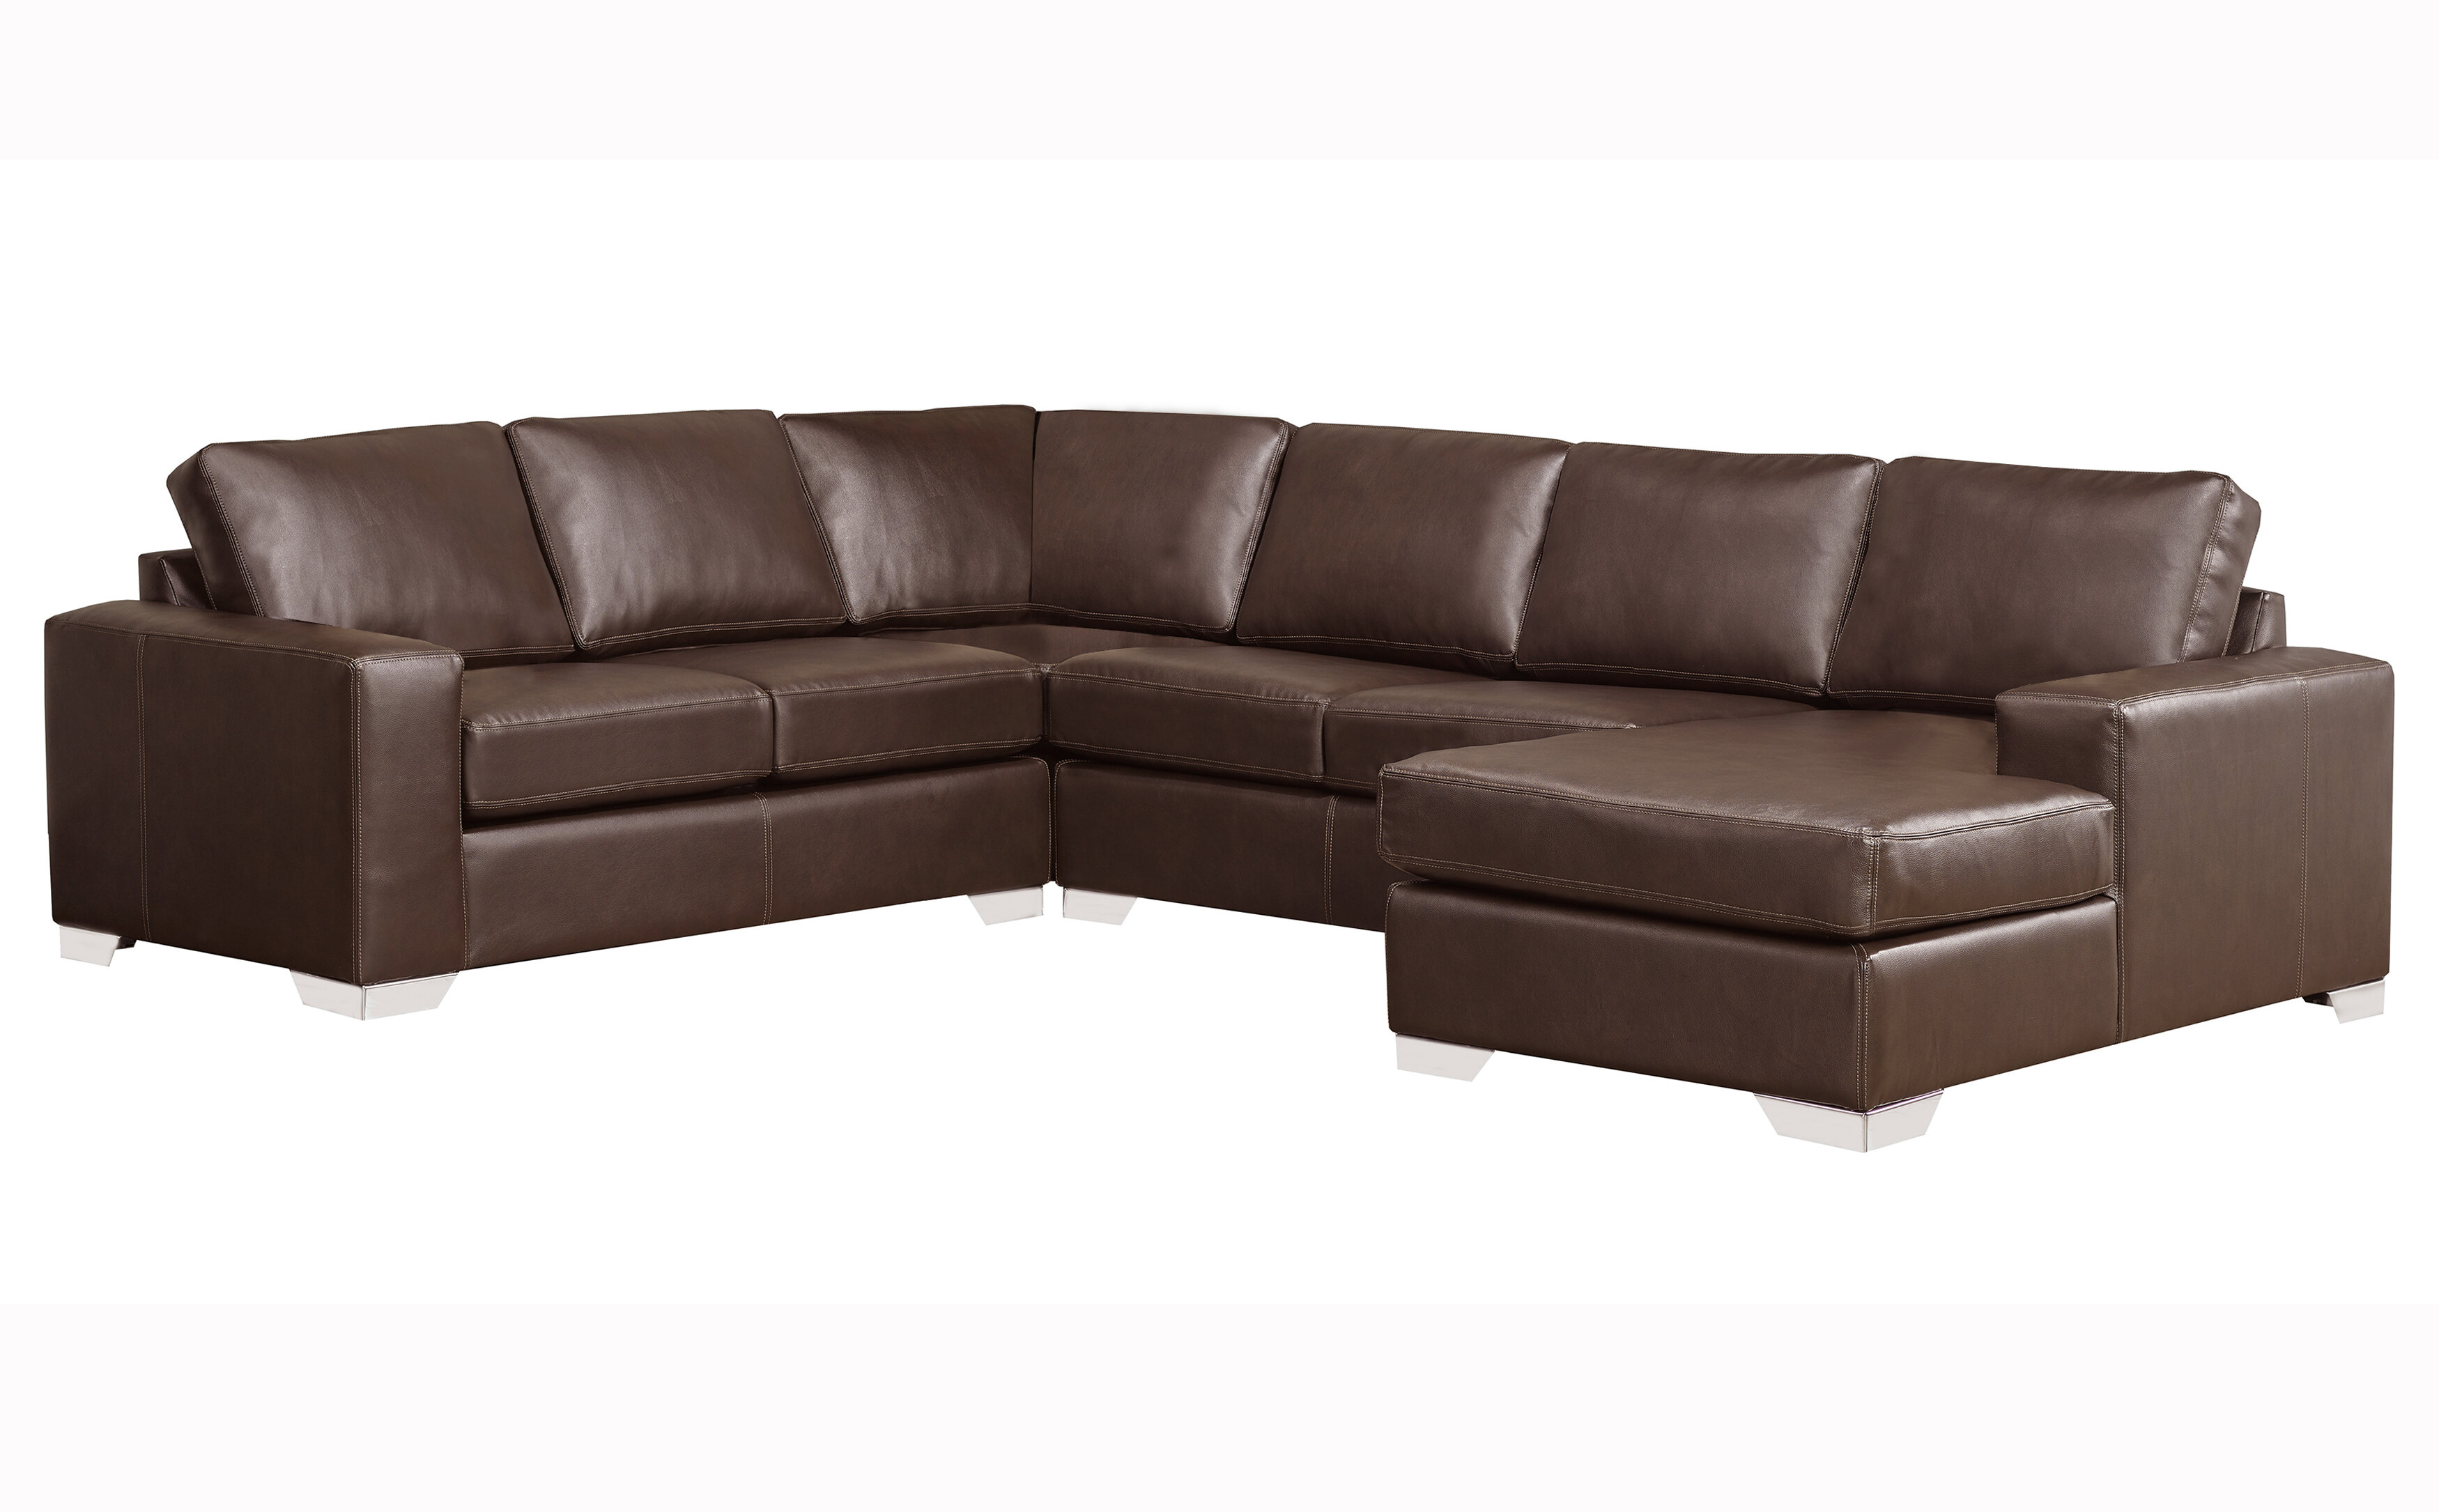 Crooke Premium Top Grain Italian Leather Right Hand Facing Sectional